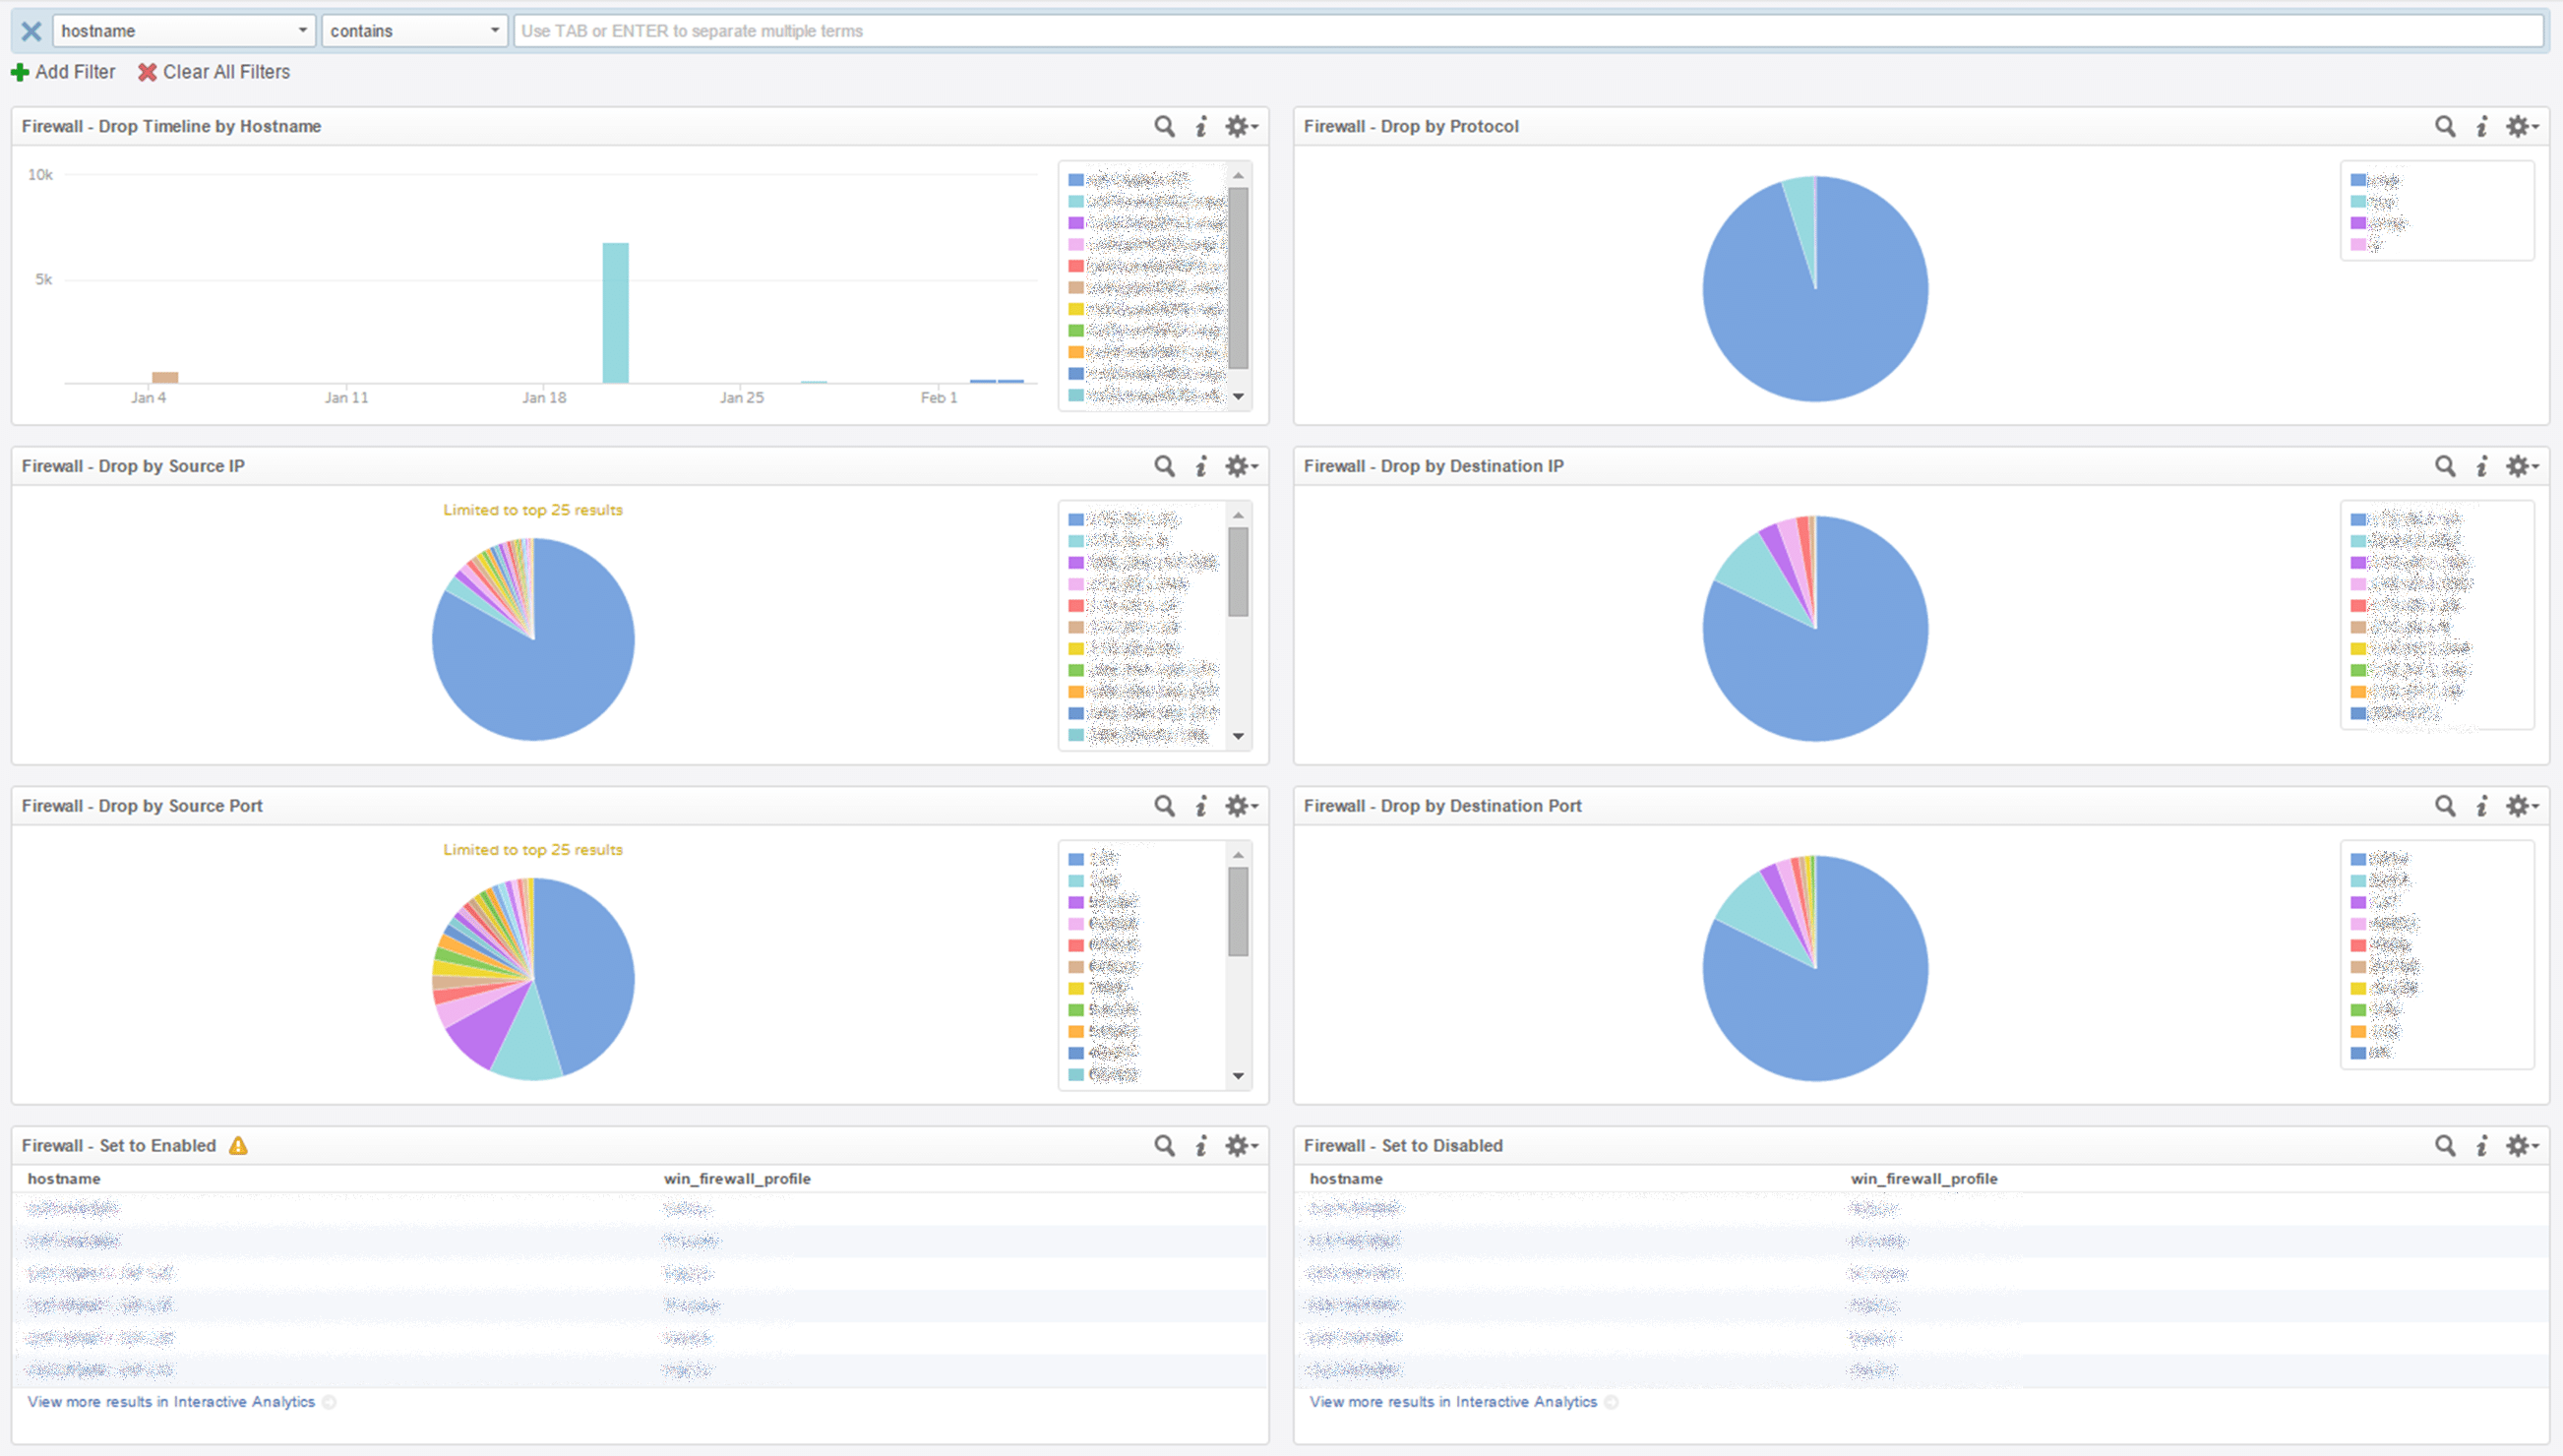 Windows Firewall Monitoring - Dashboard